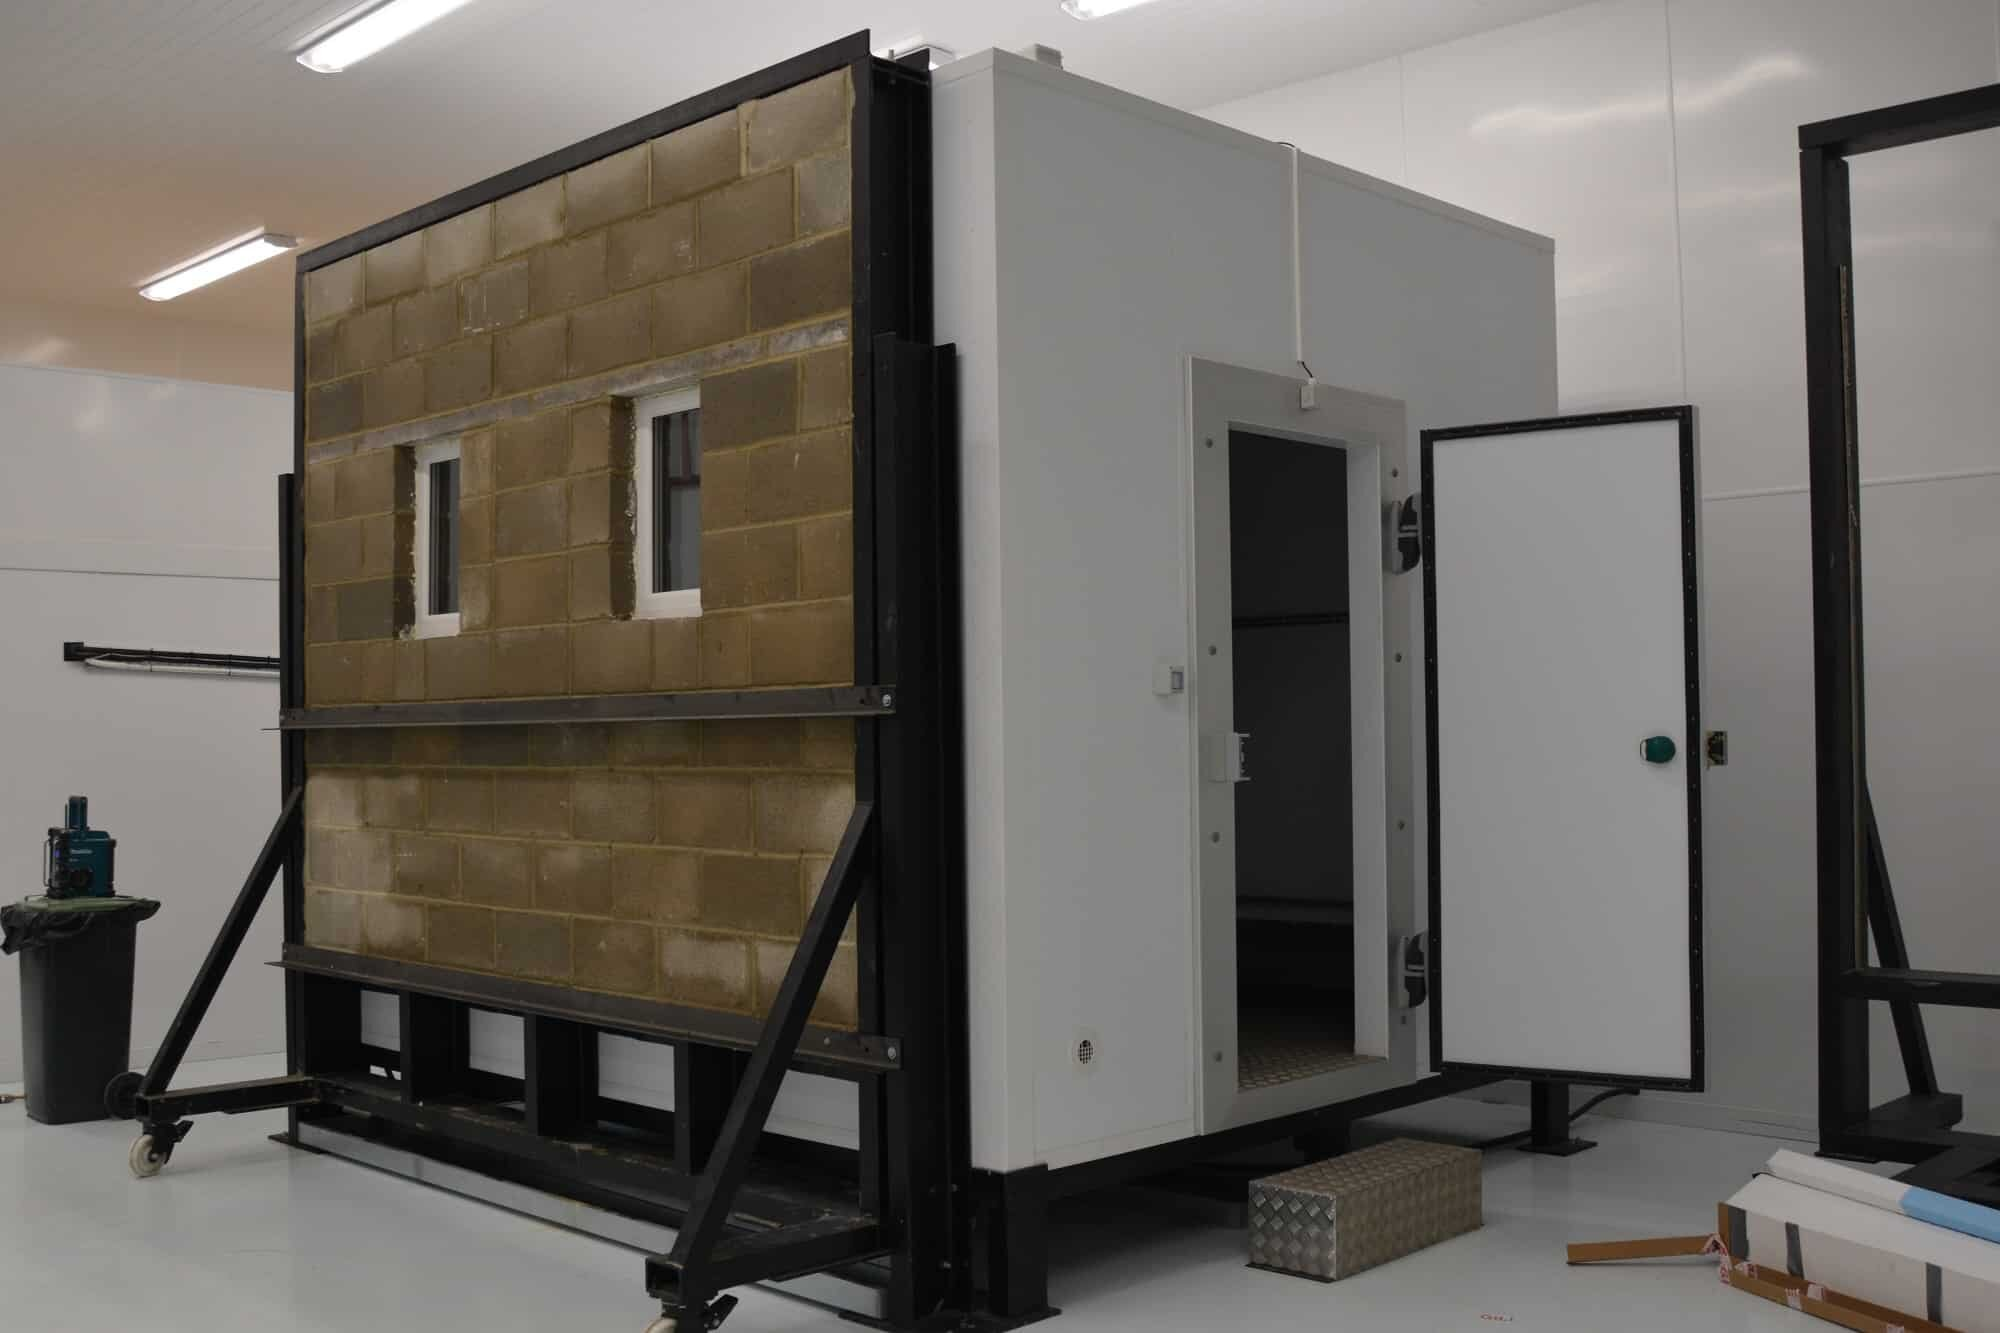 special hydrothermal booth for weather testing paints